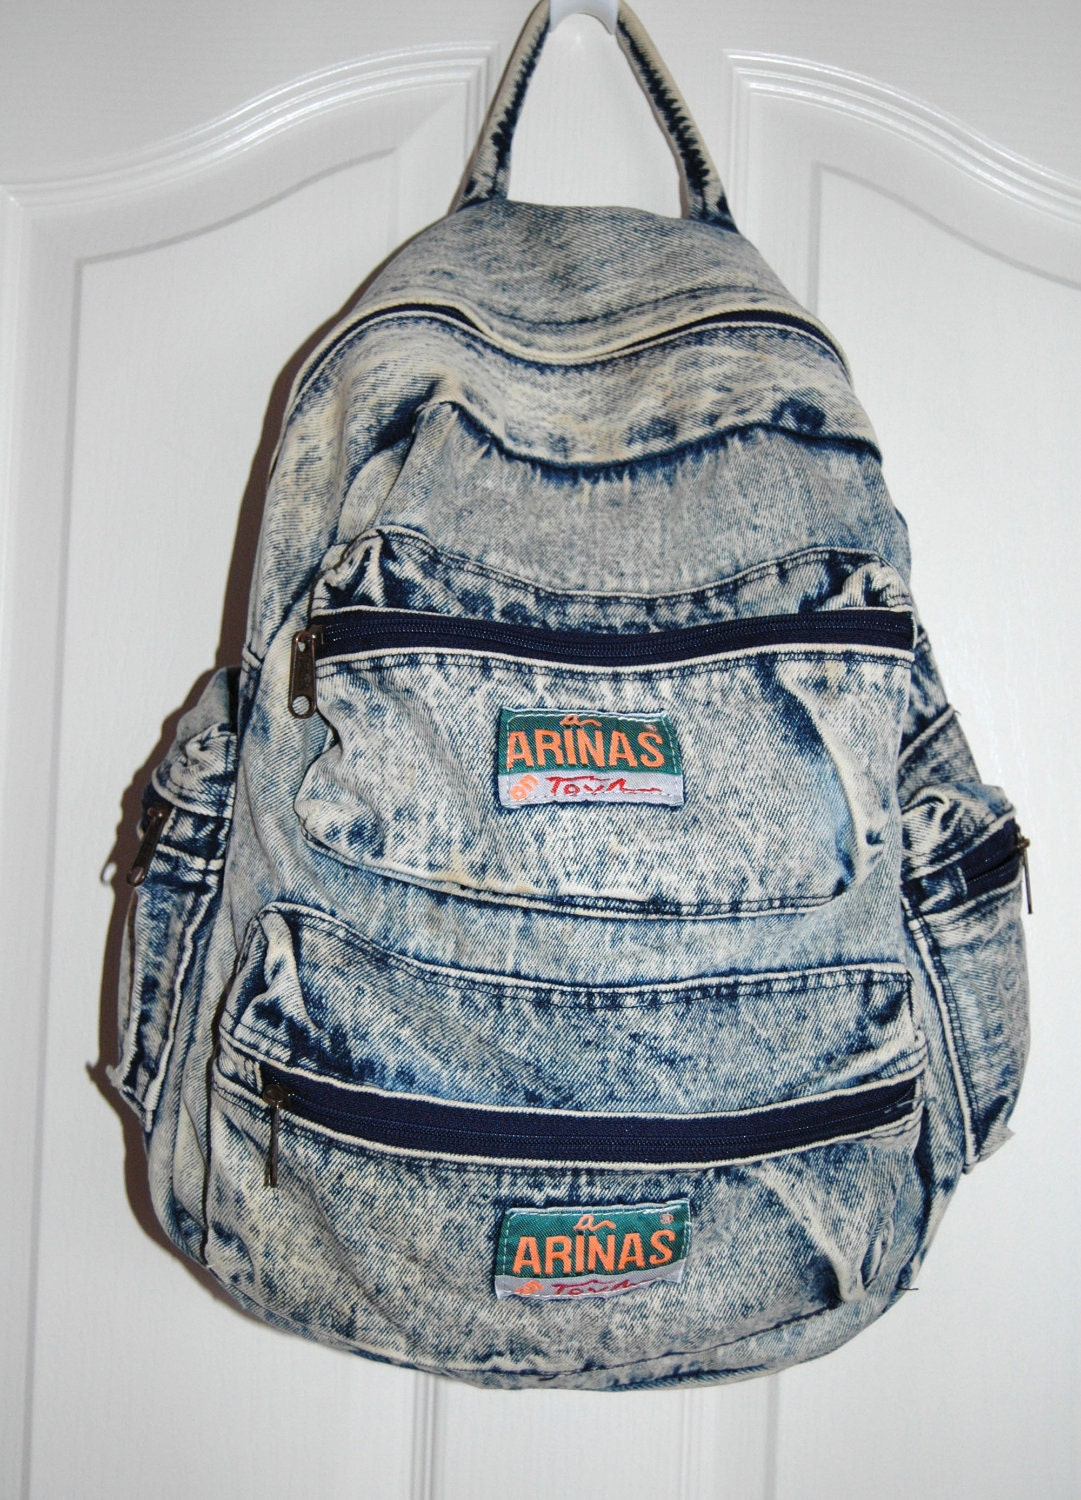 Cheap mochila bolsa, Buy Quality jeans backpack directly from China backpack fashion Suppliers: Janespri Women Vintage Washed Denim Jean Backpack Girls Fashion Multifunctional Travel Shoulder Bags Big Campus Mochilas Bolsa Enjoy Free Shipping Worldwide! Limited Time Sale Easy Return.5/5(5).